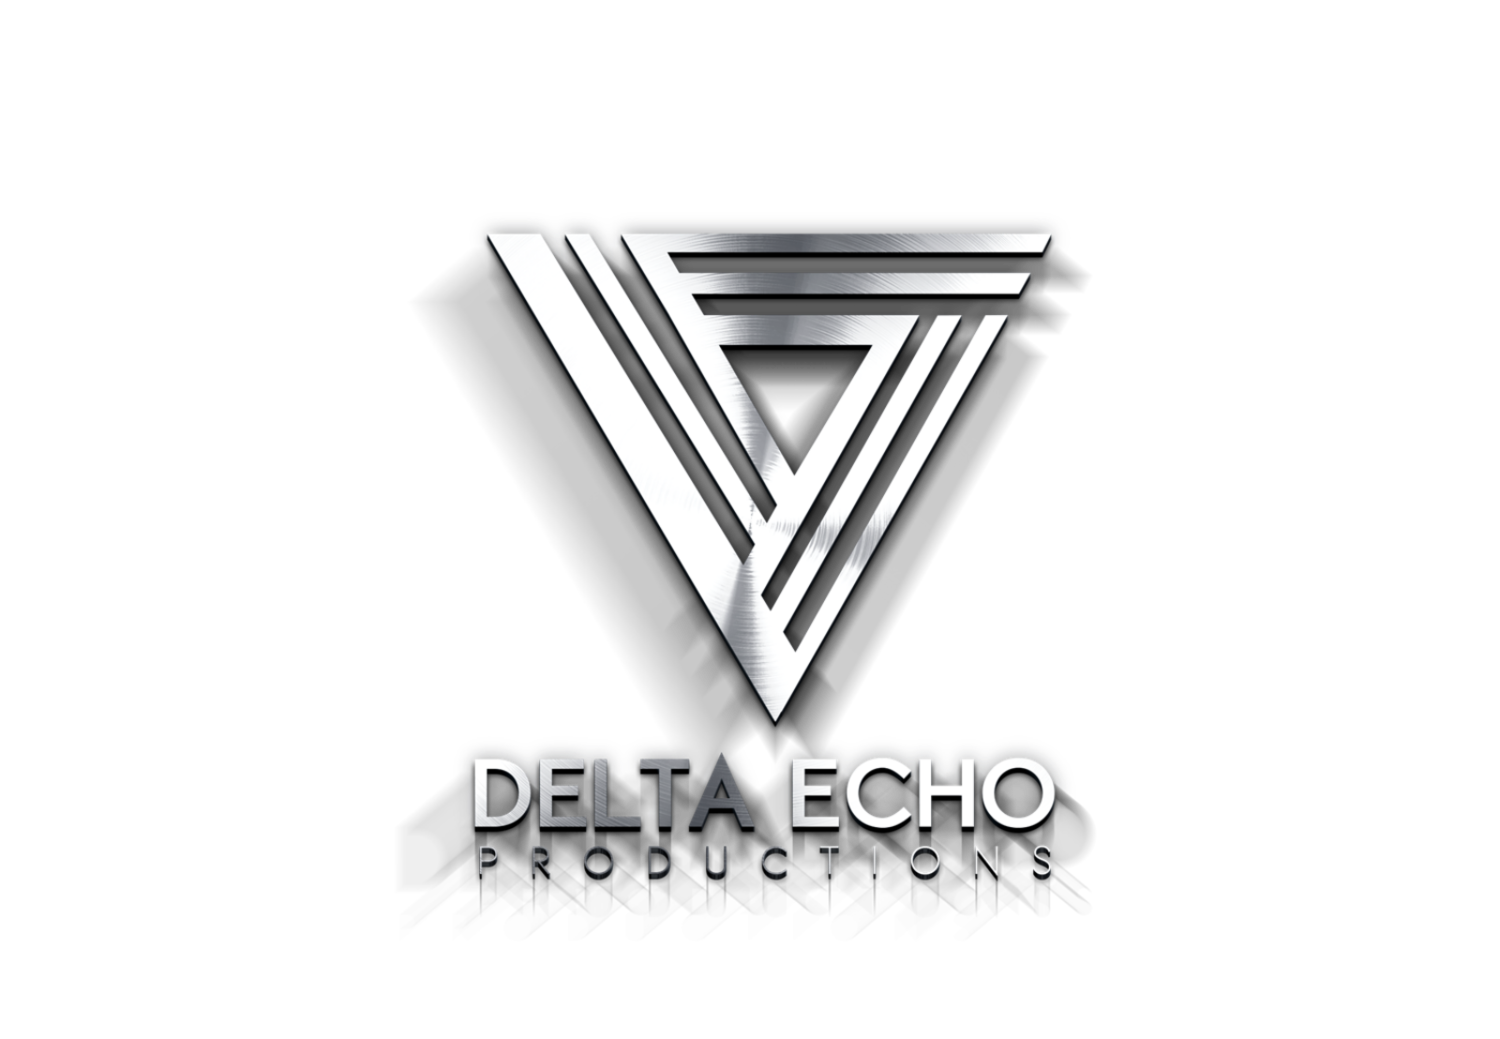 Delta Echo Productions